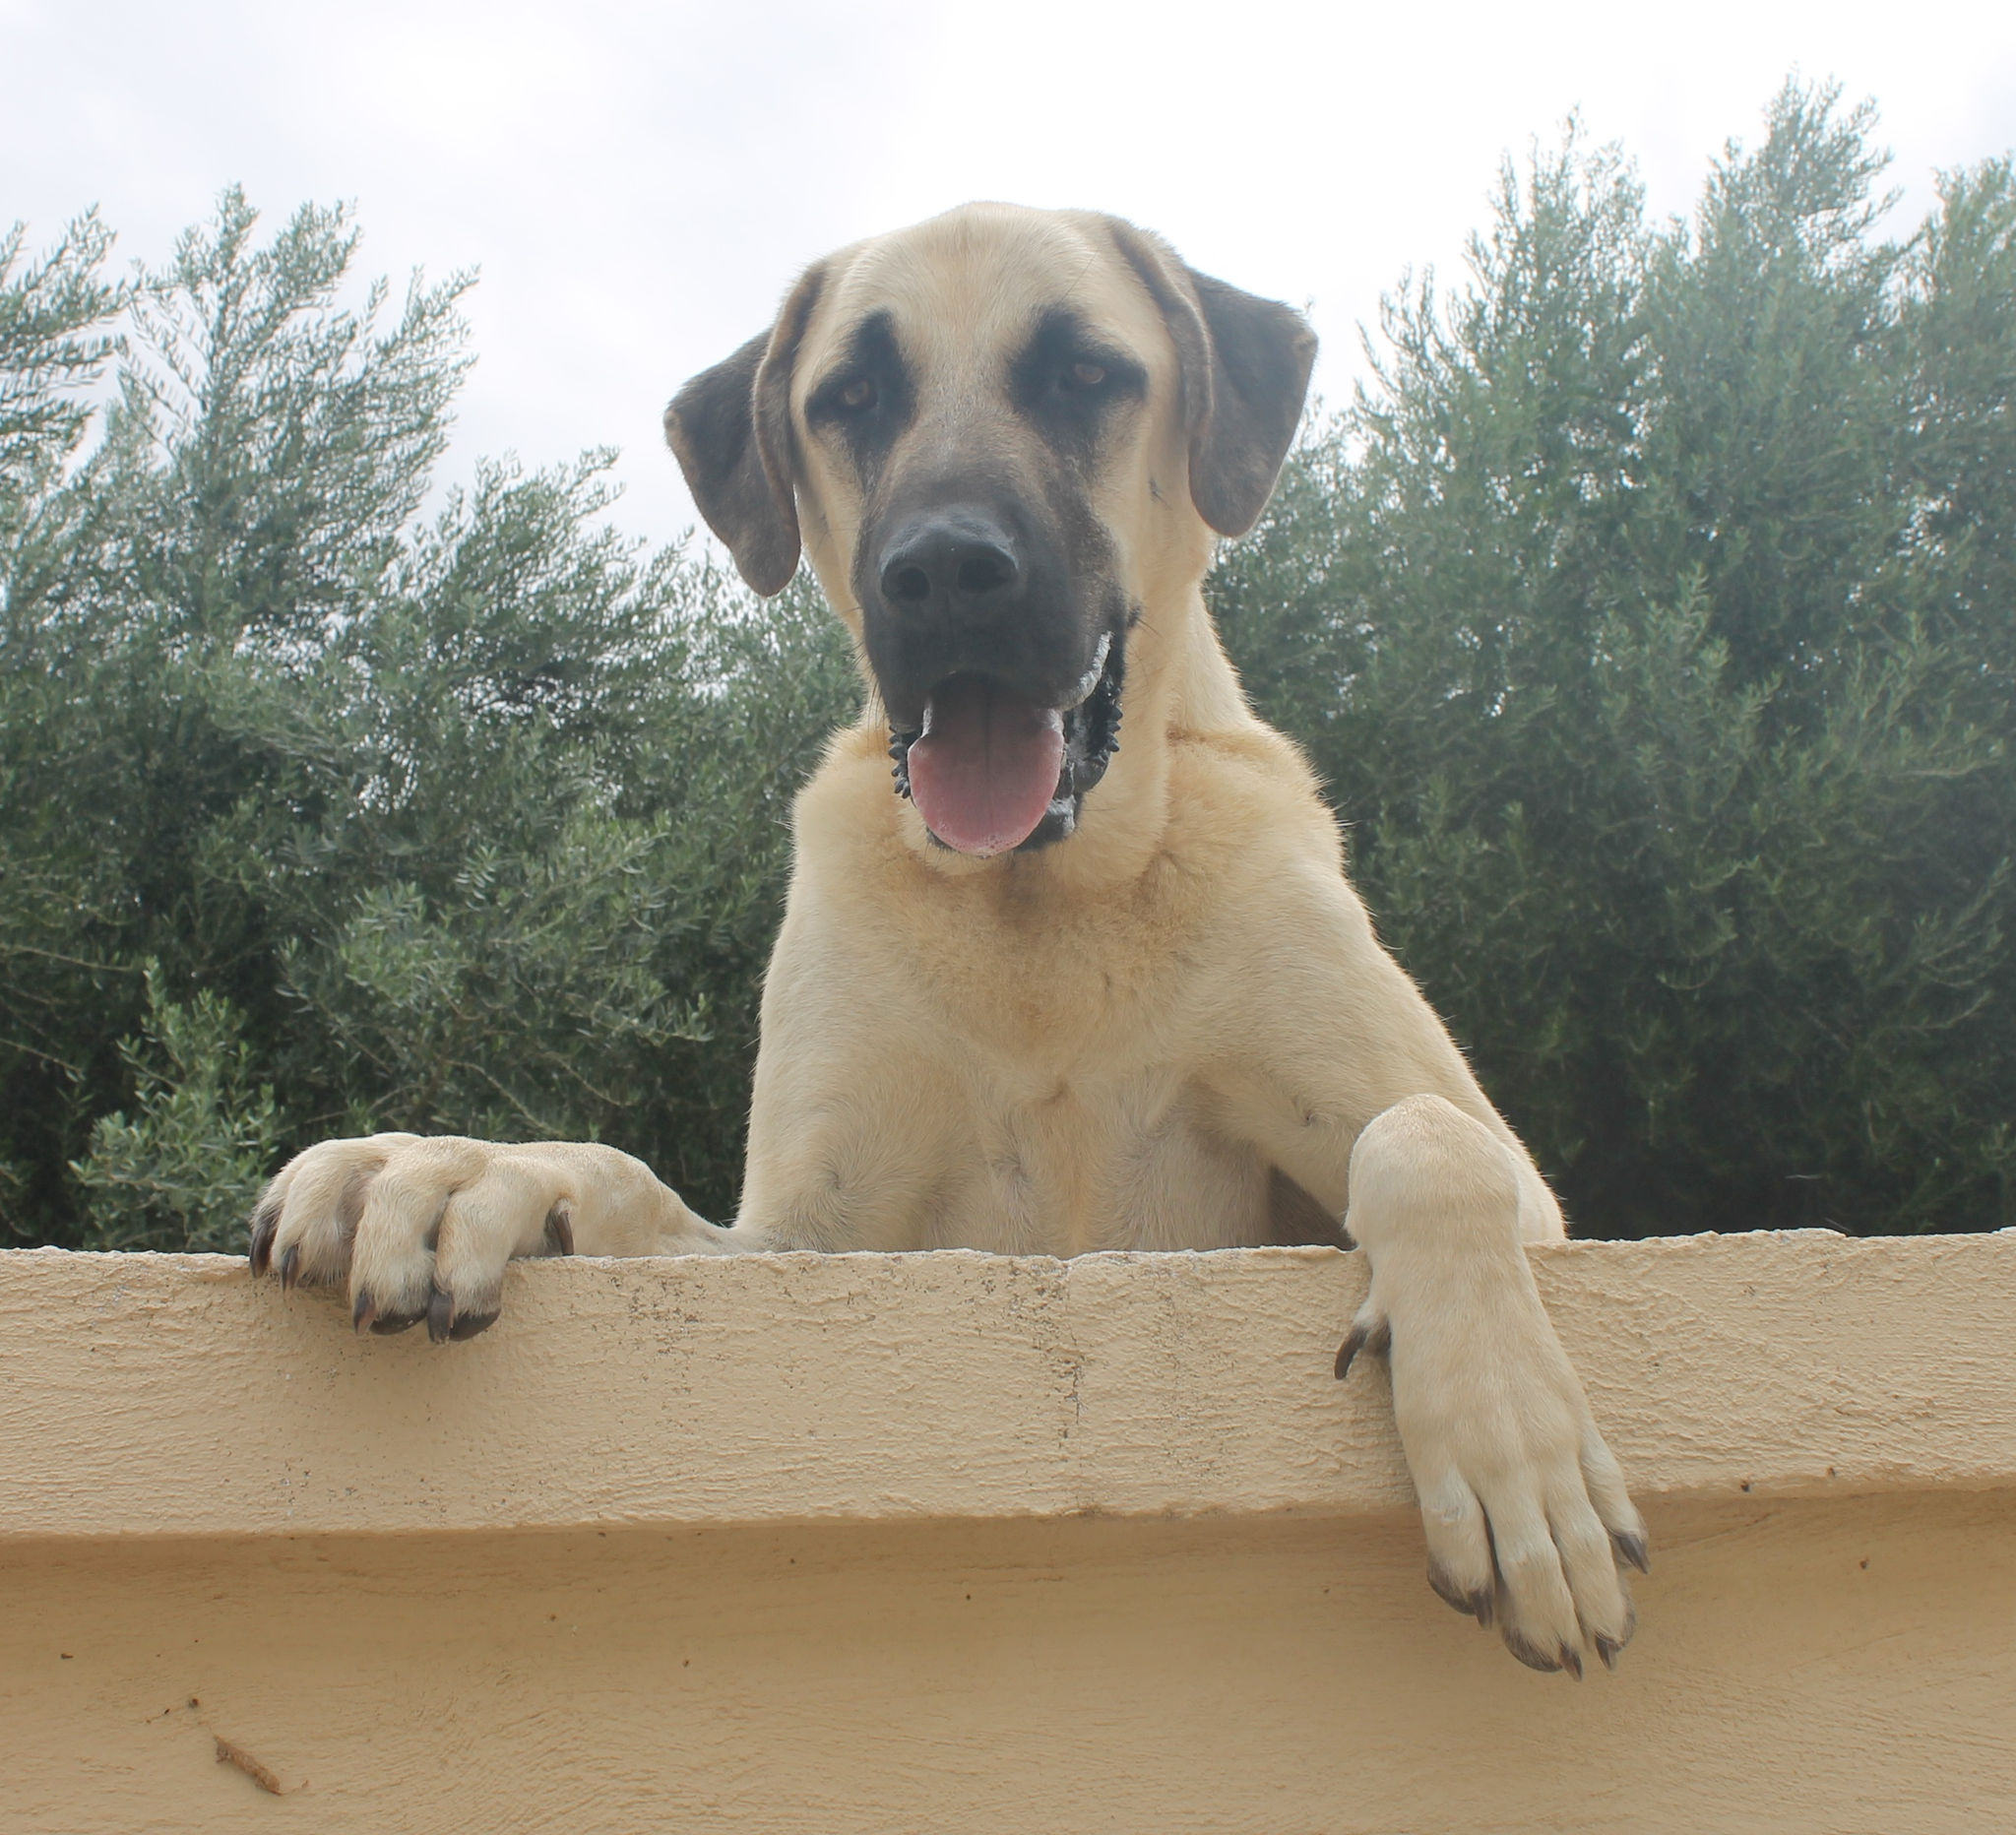 Beauteous Large A Kangal Dog Is Not A Good Dog Time Owners Hypoallergenic Dogs Thinking Time Owners A A Kangal Dog Will Very Large When Fully Grown To A Guard Dogs Experience bark post Best Dogs For First Time Owners